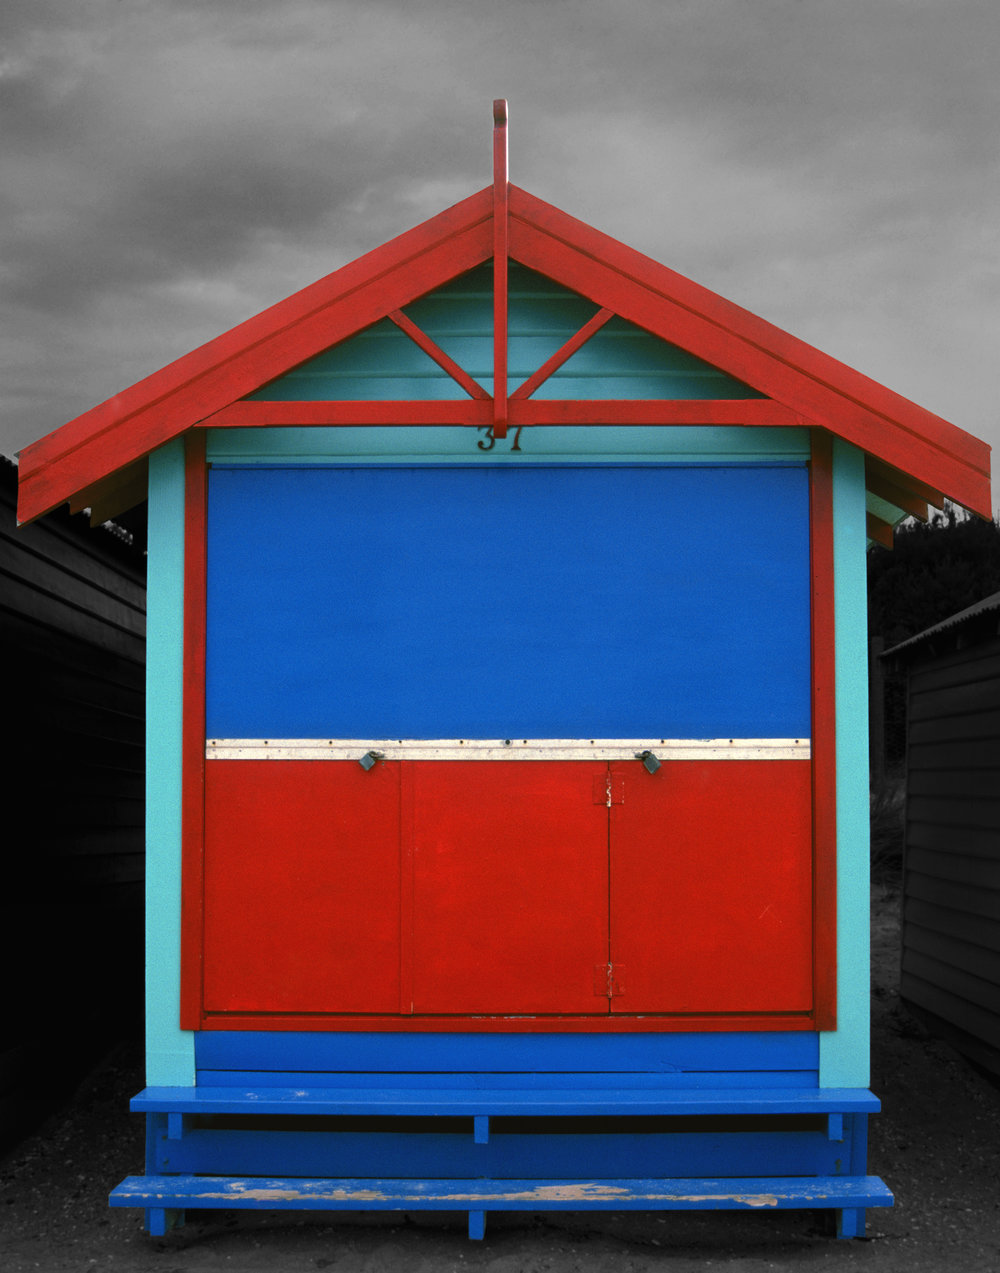 Judy Gelles,  Beach Box No. 37 , 2003  Digital pigment print, 8 x 10 in, edition of 20; 11 x 14 in, edition of 25; 16 x 20 in, edition of 25   Inquire